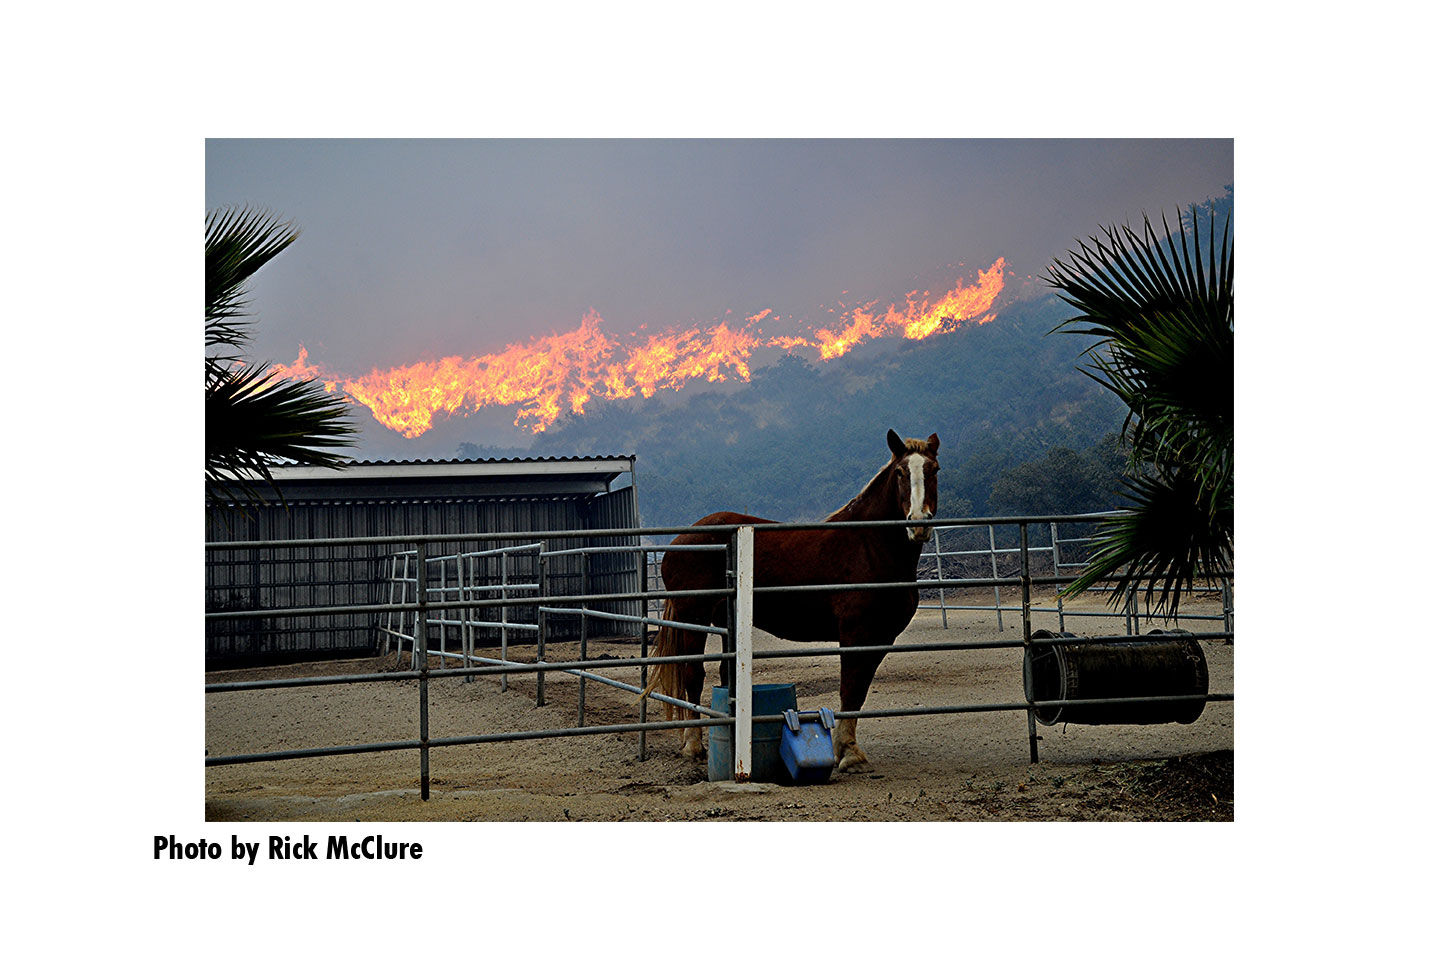 A horse int the fireground with flames roaring in the back